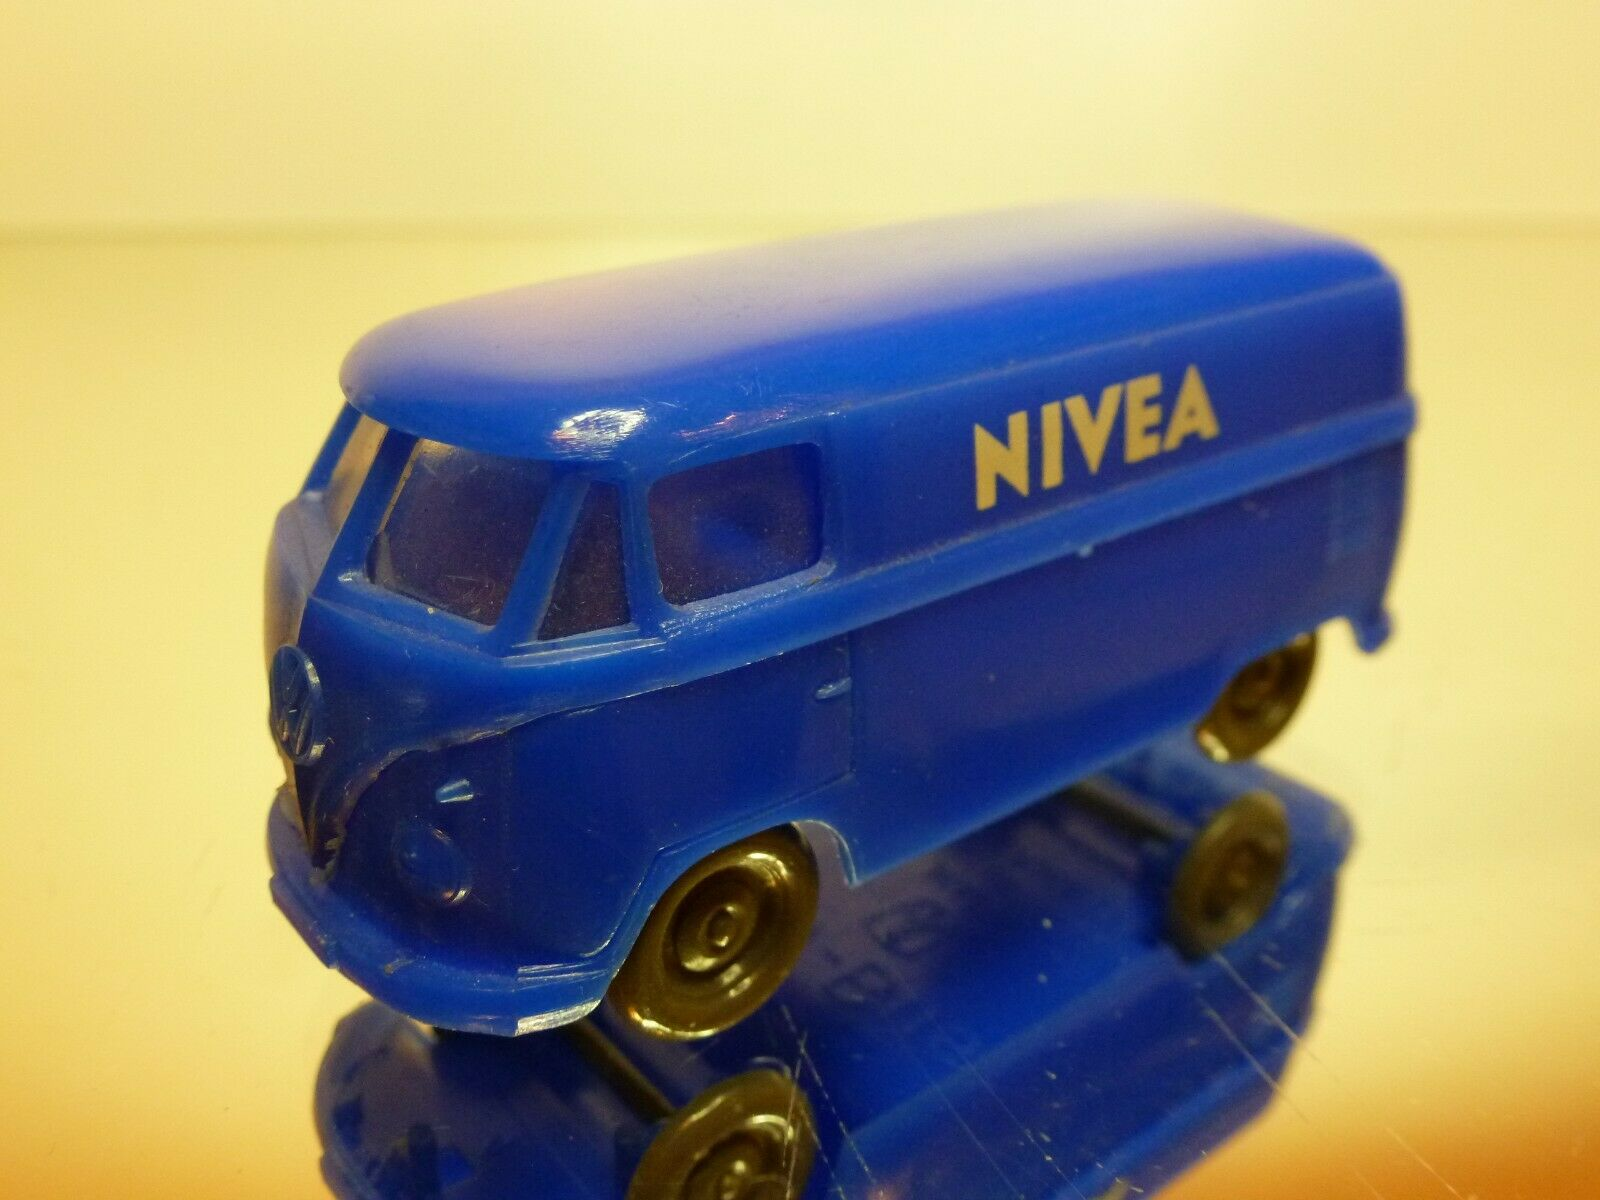 HAMMER  4 PLASTIC VW VOLKSWAGEN T1 BUS - NIVEA - L7.0cm - GOOD CONDITION